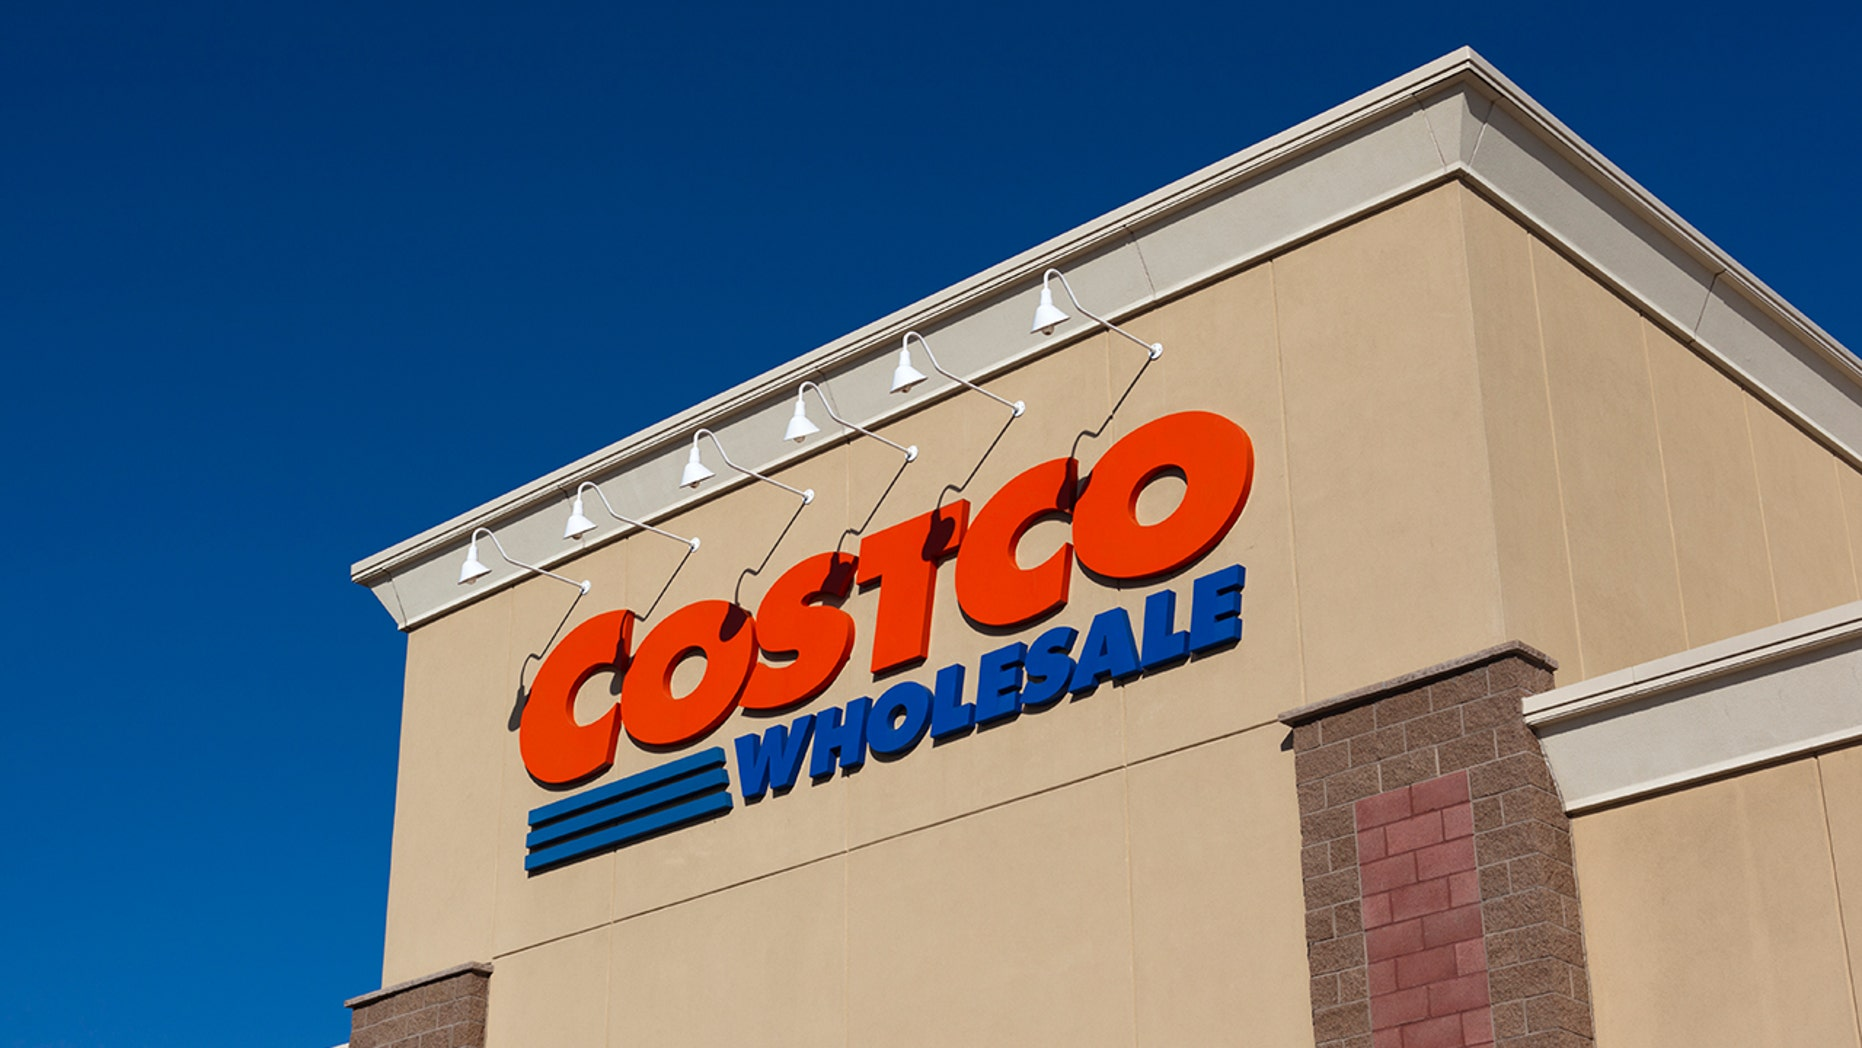 Avoid the crowds by visiting Costco at the times.